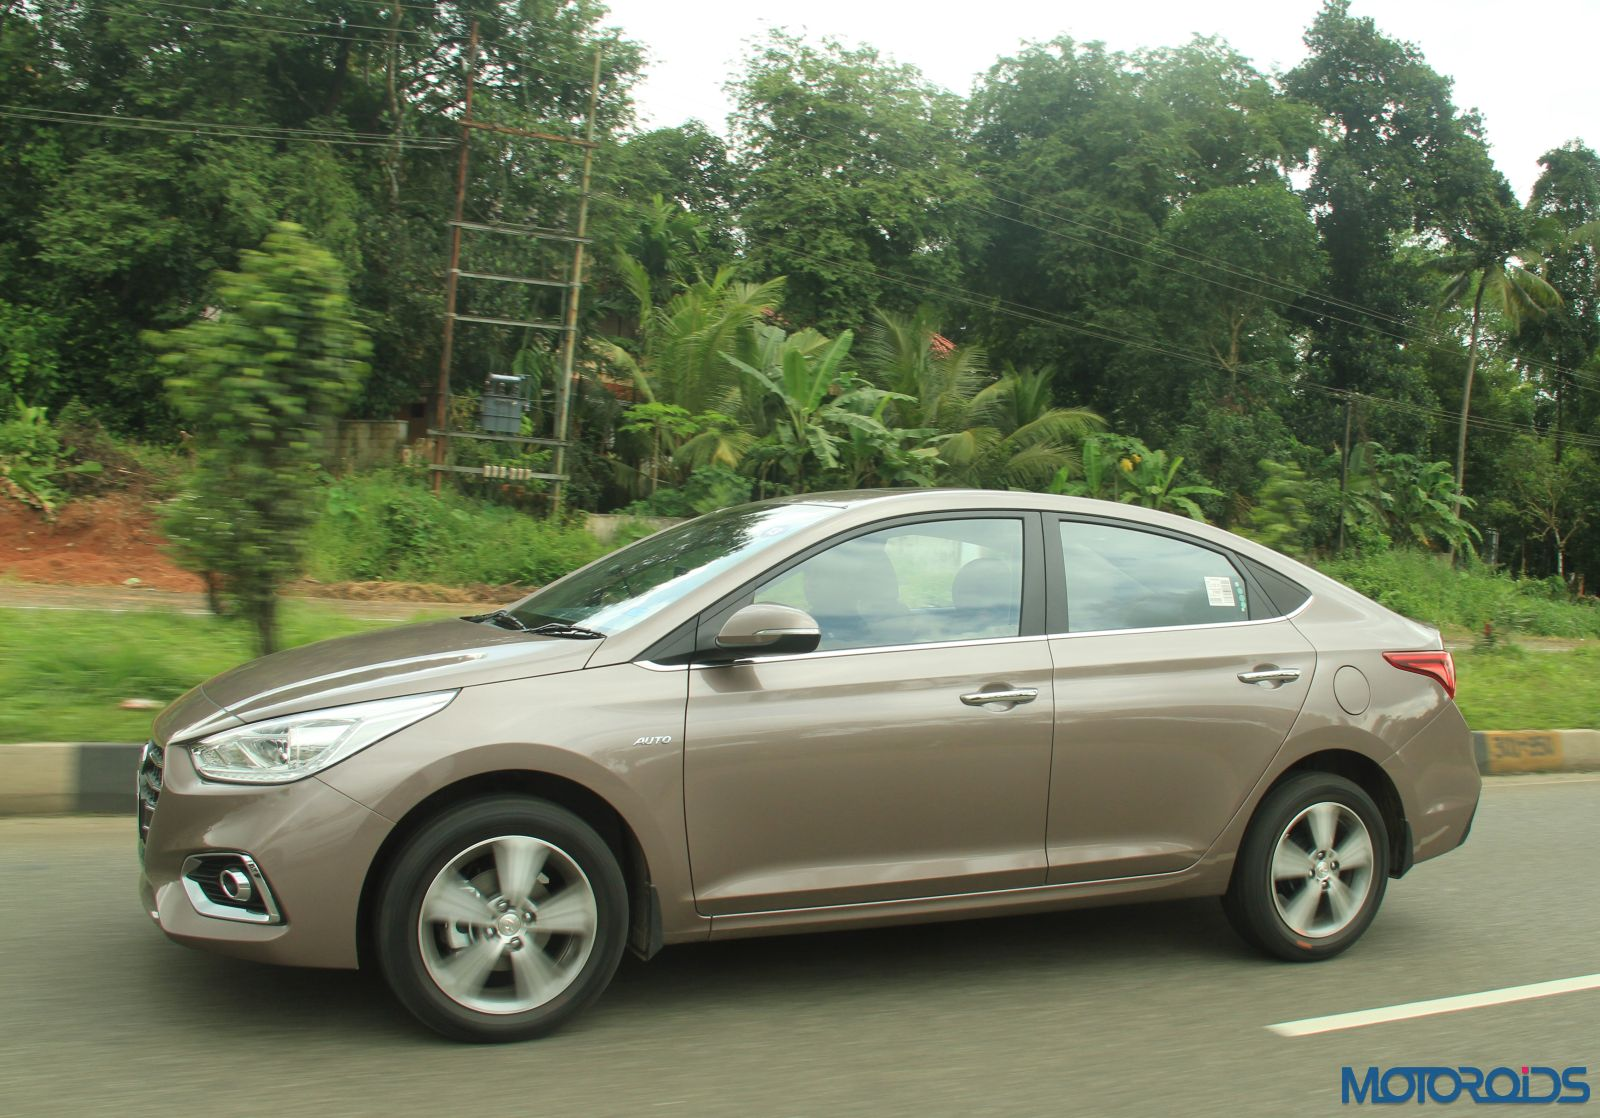 August 28, 2017-New-2017-Next-gen-Hyundai-Verna-motion-shots-brown-1.jpg